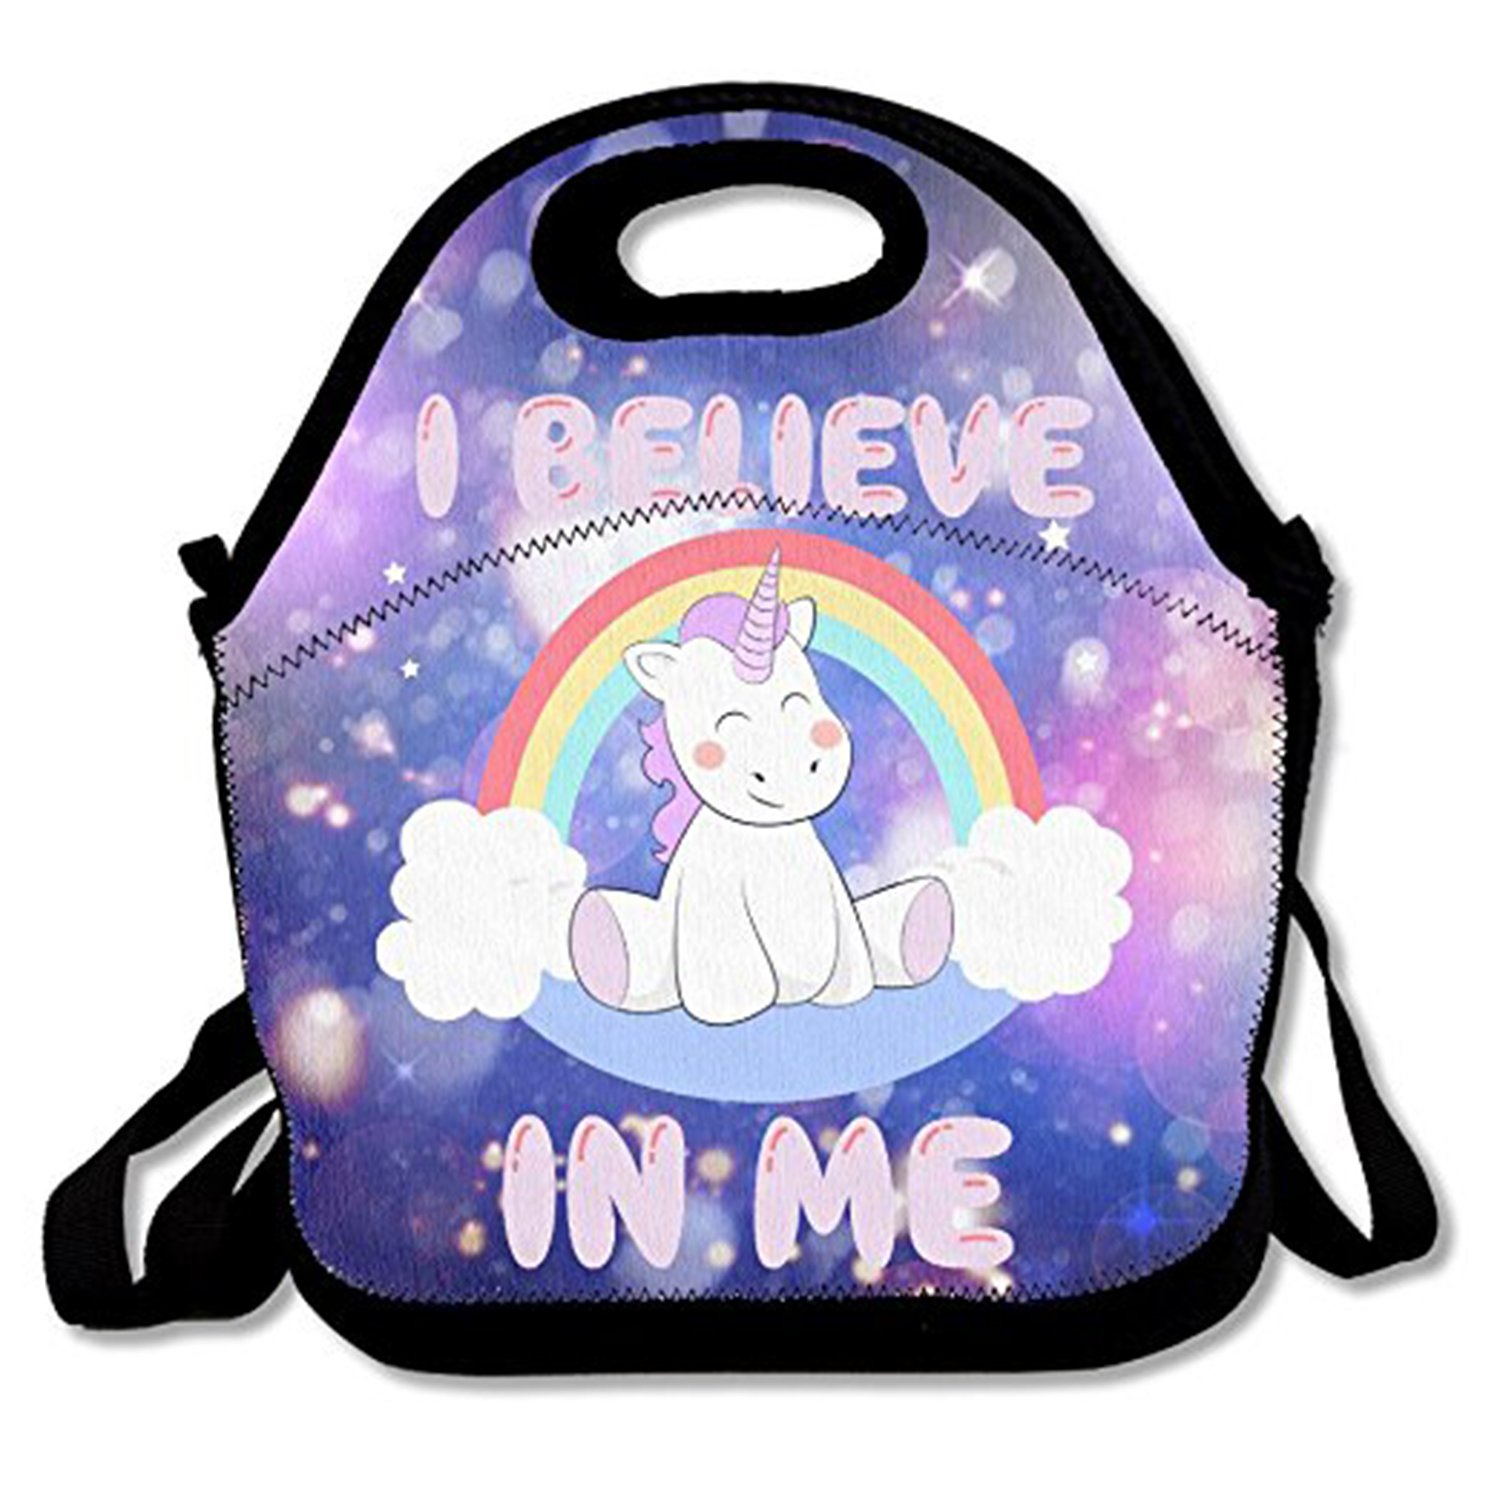 ZMvise Universe Unicorn I Believe In Me Lunch Tote Insulated Reusable Picnic Lunch Bag Lunch Box For Men Women Adults Kids Toddler Nurses ZMJingle-66